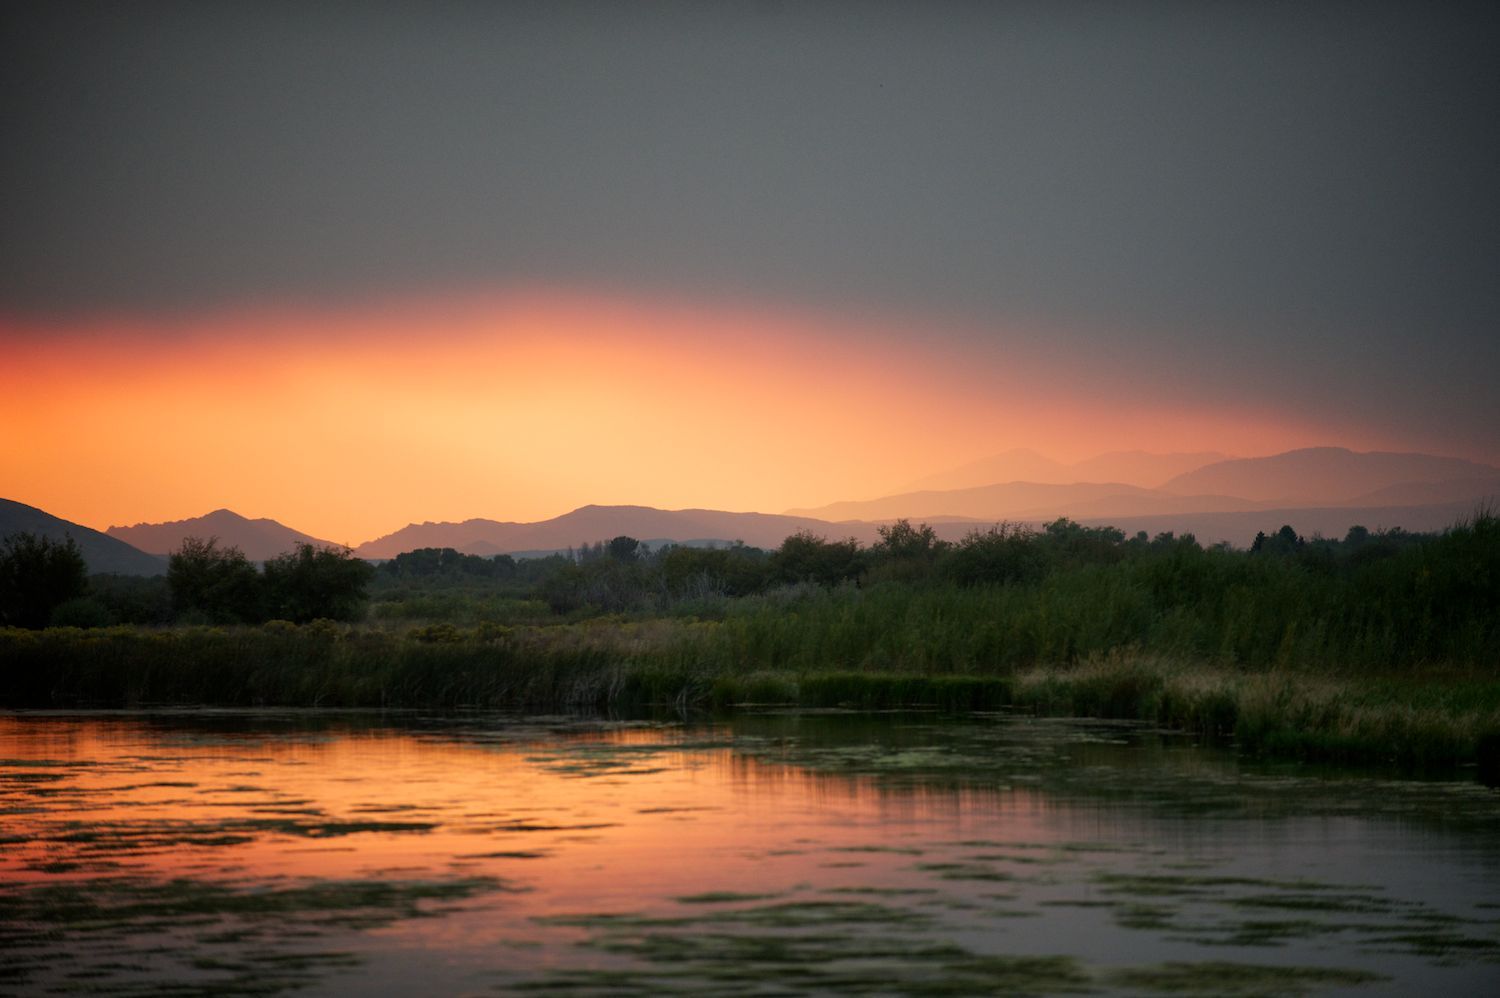 Silver Creek and a smoky sunset.